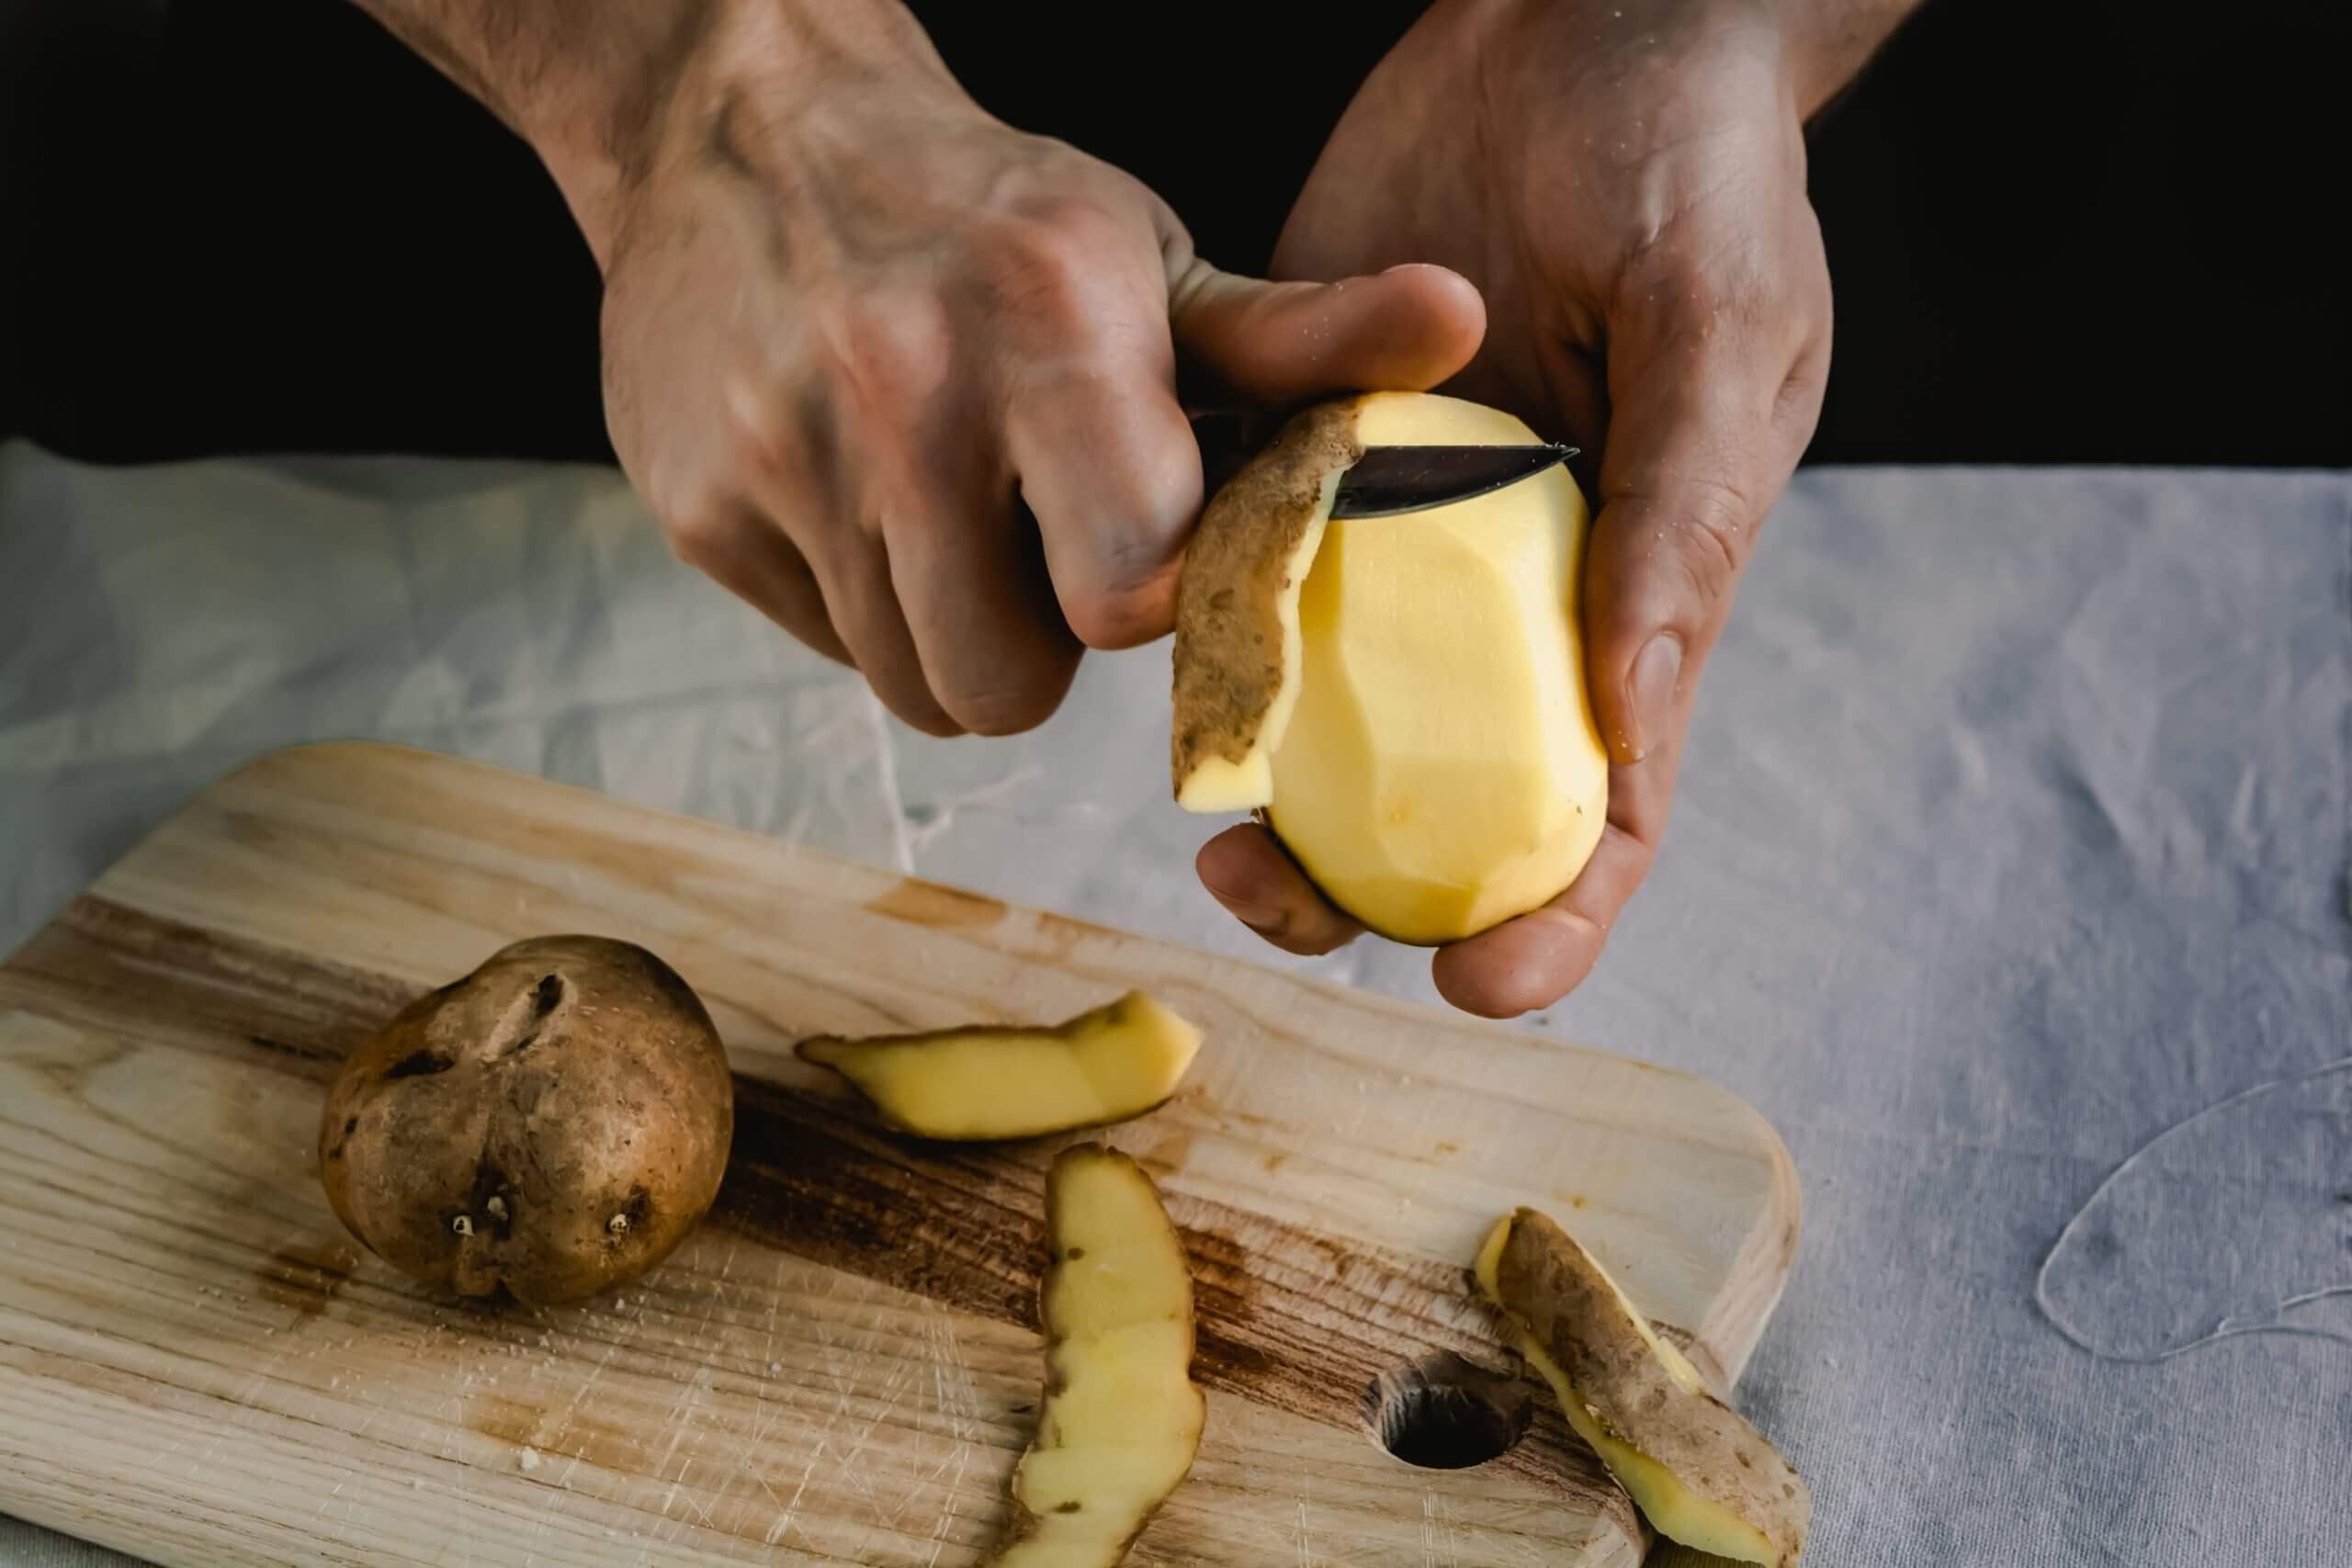 Chef peeling potatoes on wooden cutting board